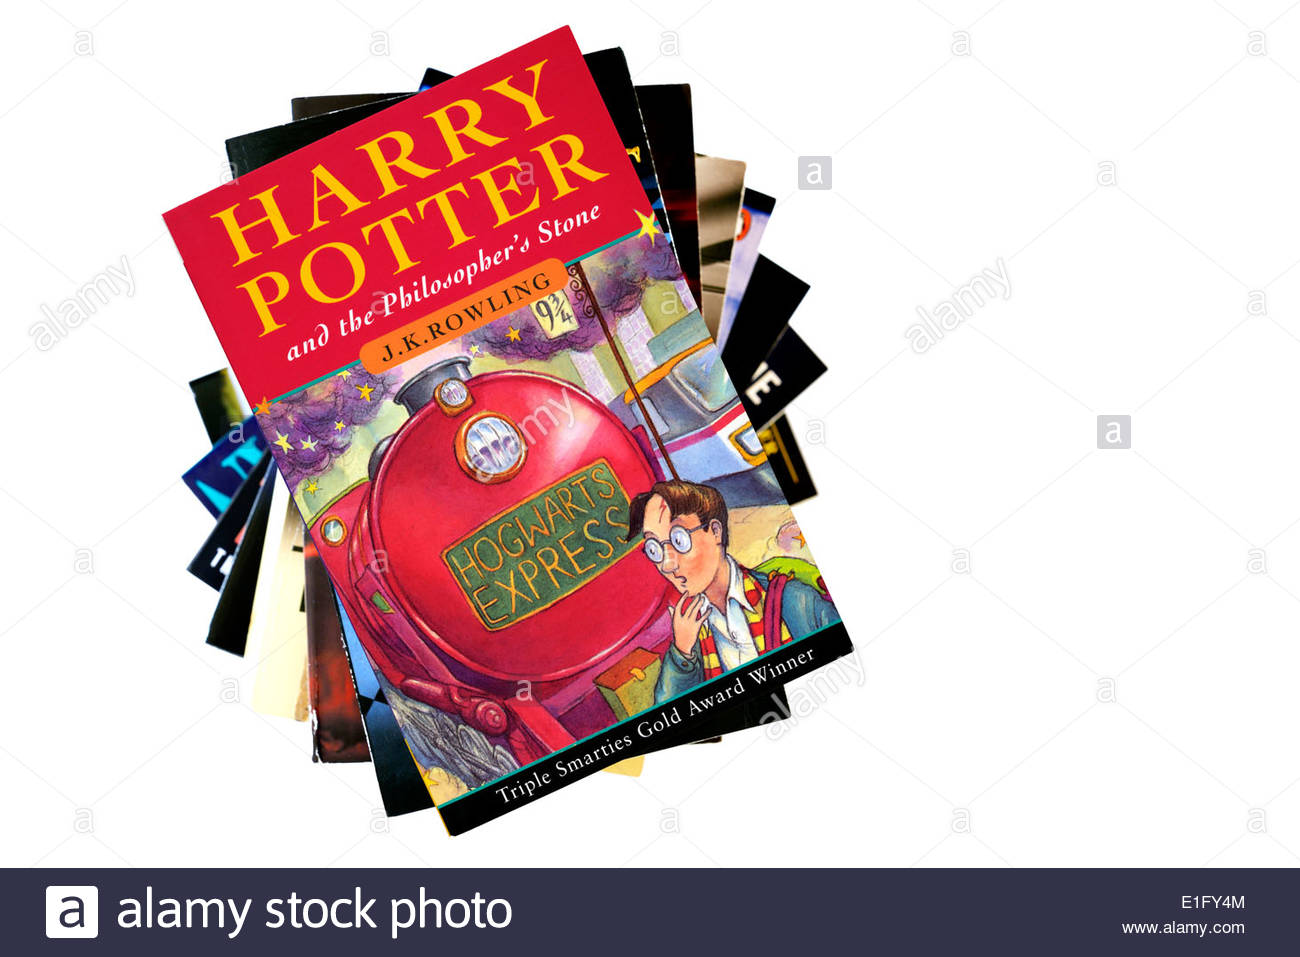 Harry Potter and the Philosopher's Stone by J K Rowling, paperback title stacked used books, England Stock Photo